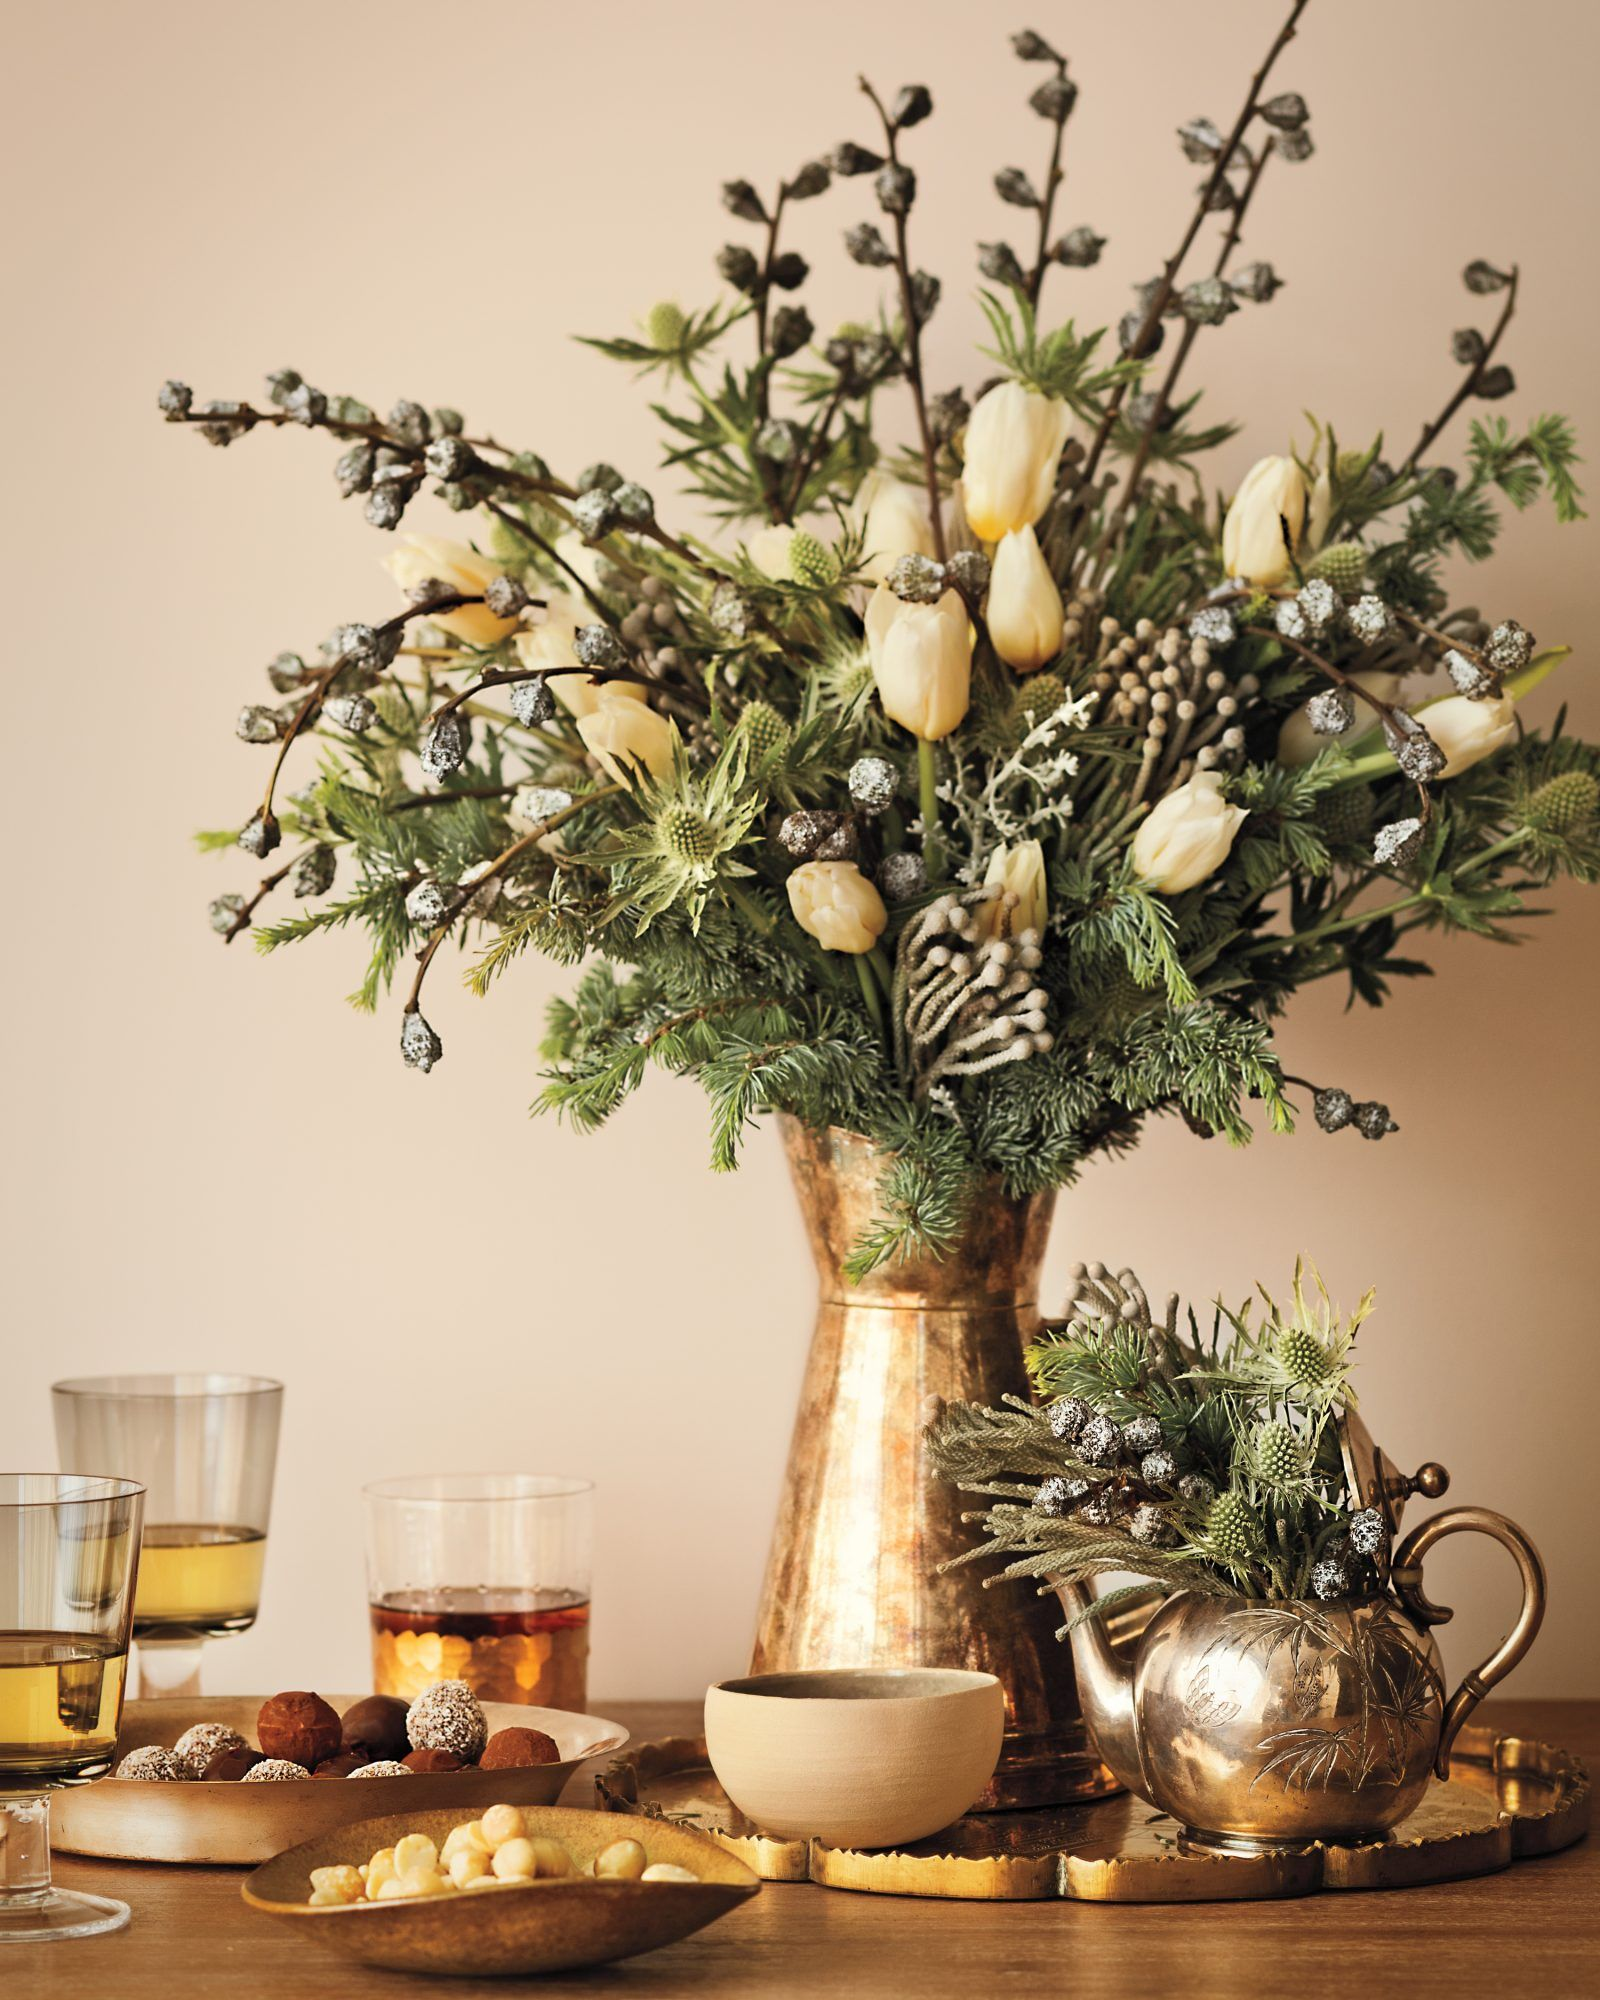 HOLIDAY GREENERY 101 HOW TO DECORATE WITH IT AND KEEP IT